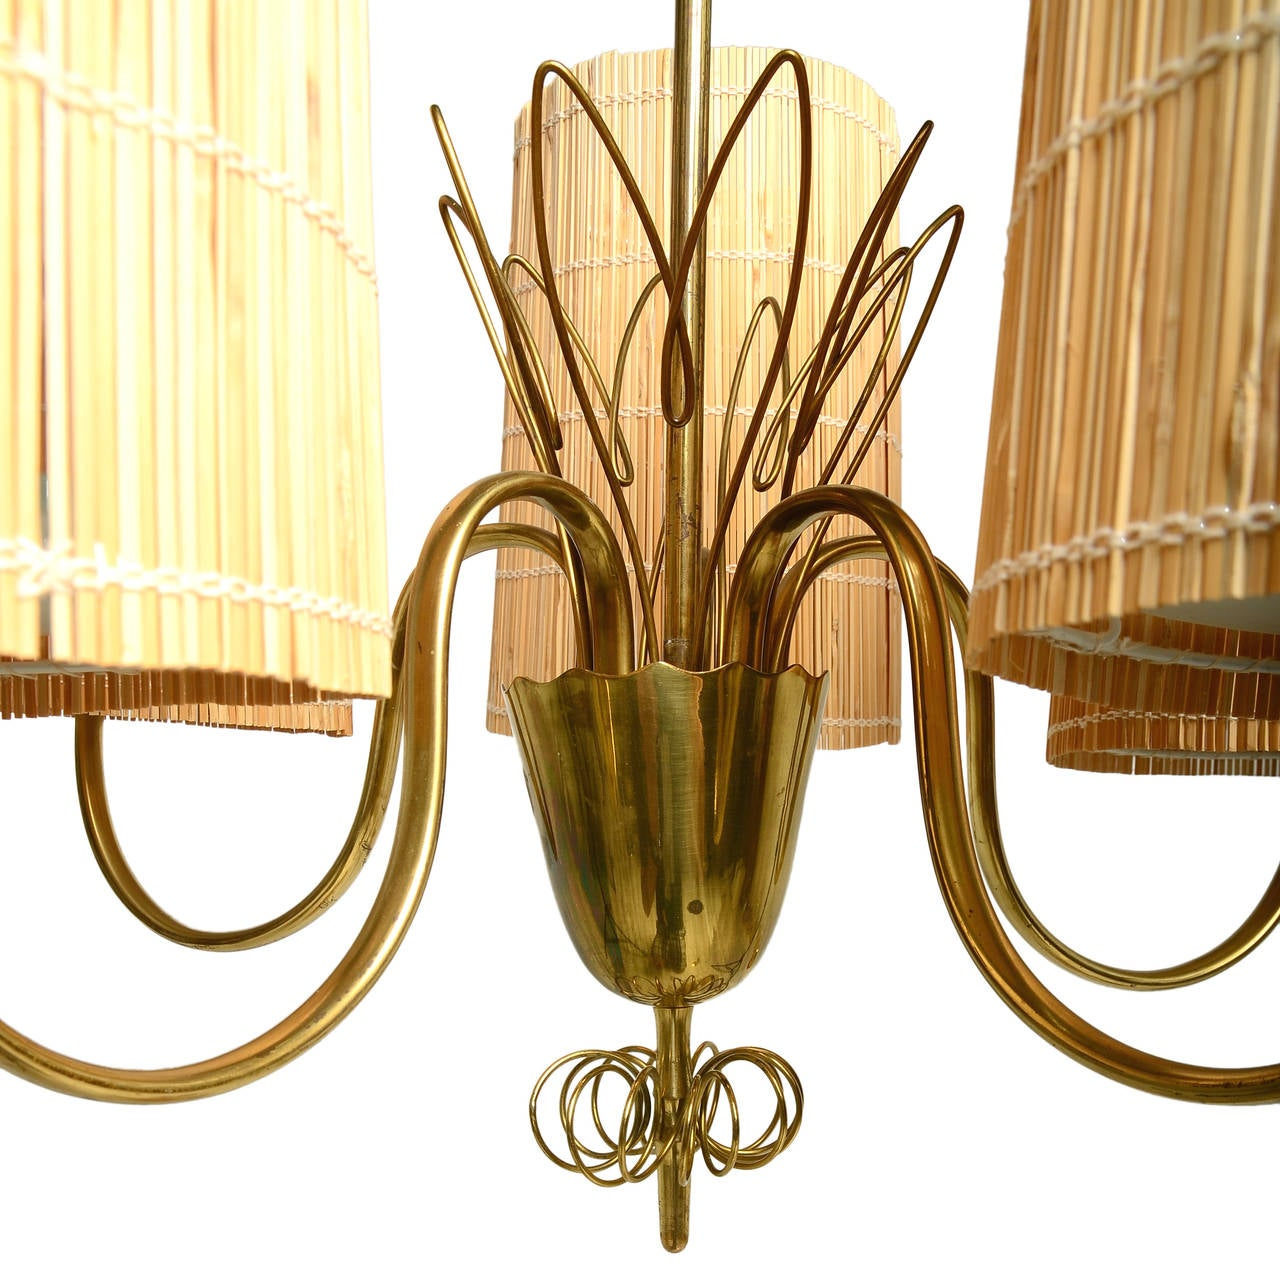 Finnish Paavo Tynell Five-Arm Chandelier with Slatted Shades For Sale